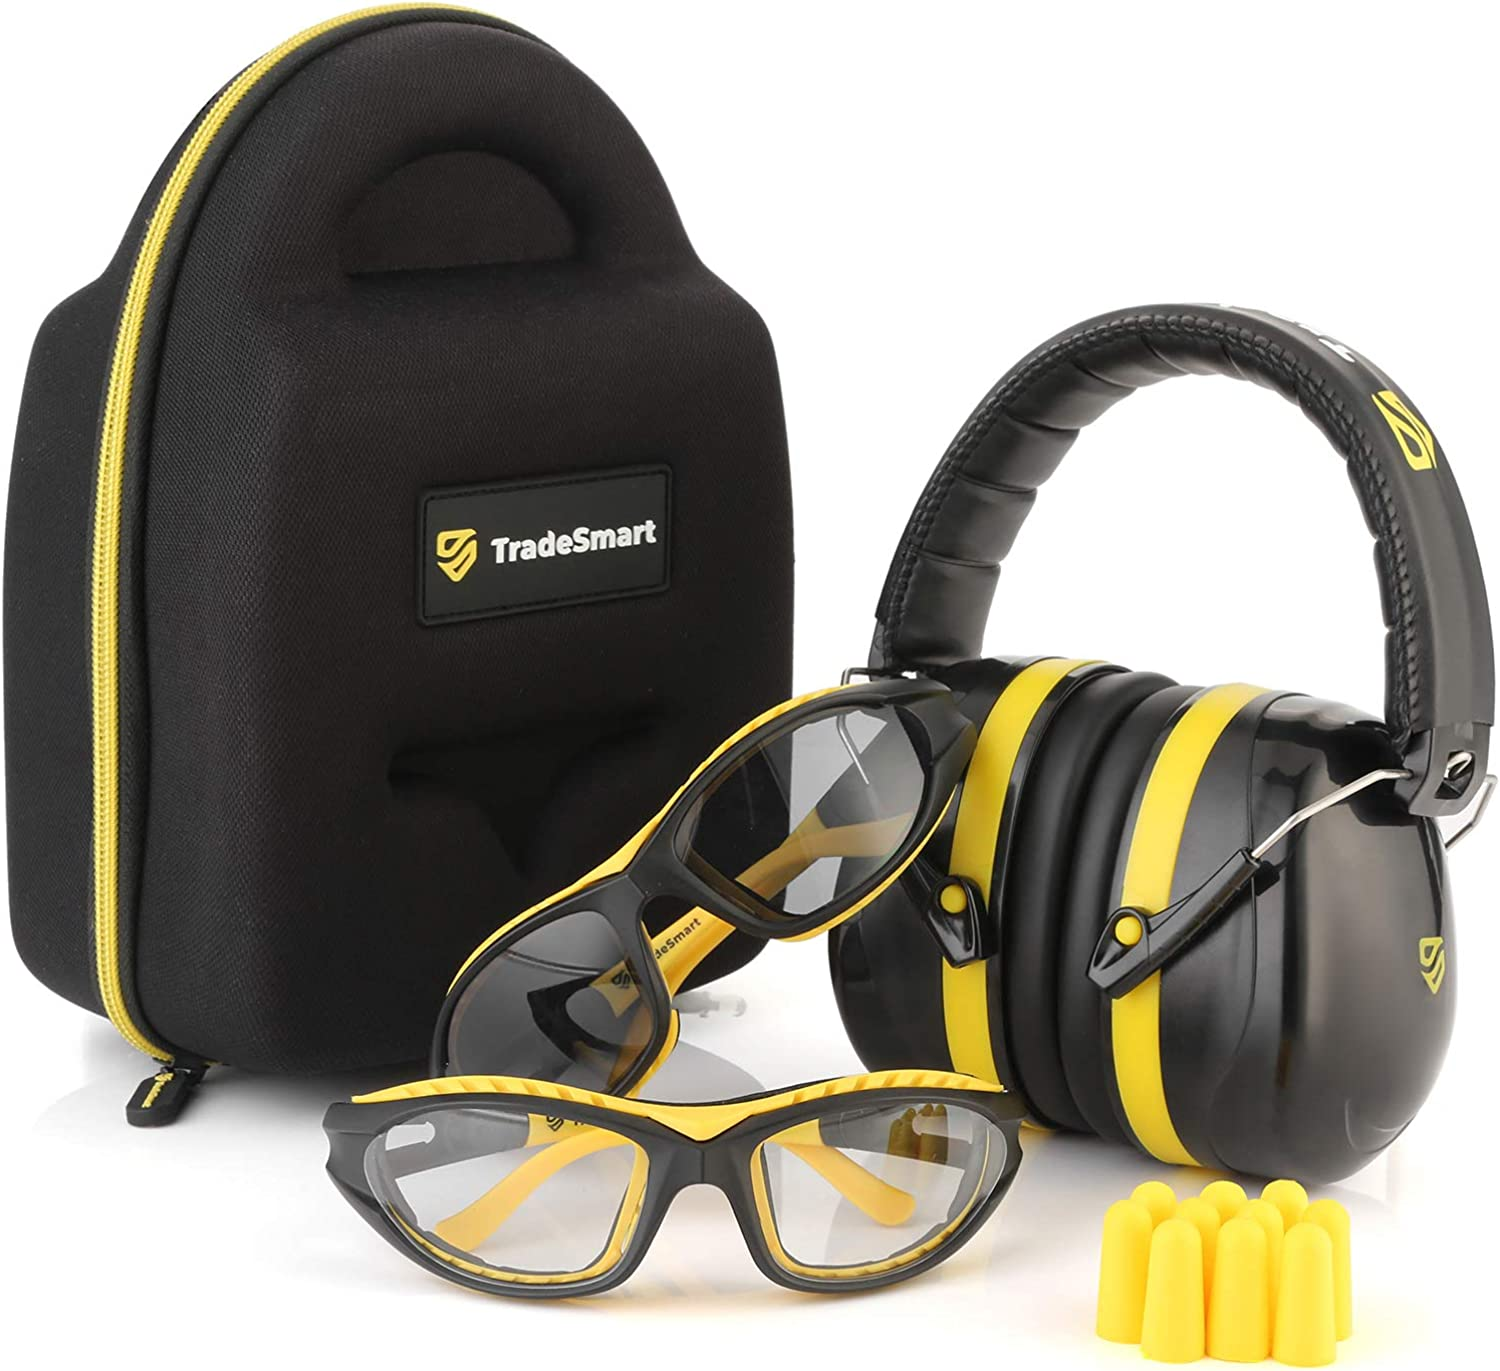 TRADESMART Shooting Range Earmuffs and – Safety Glasses New mail order Popular overseas Eye